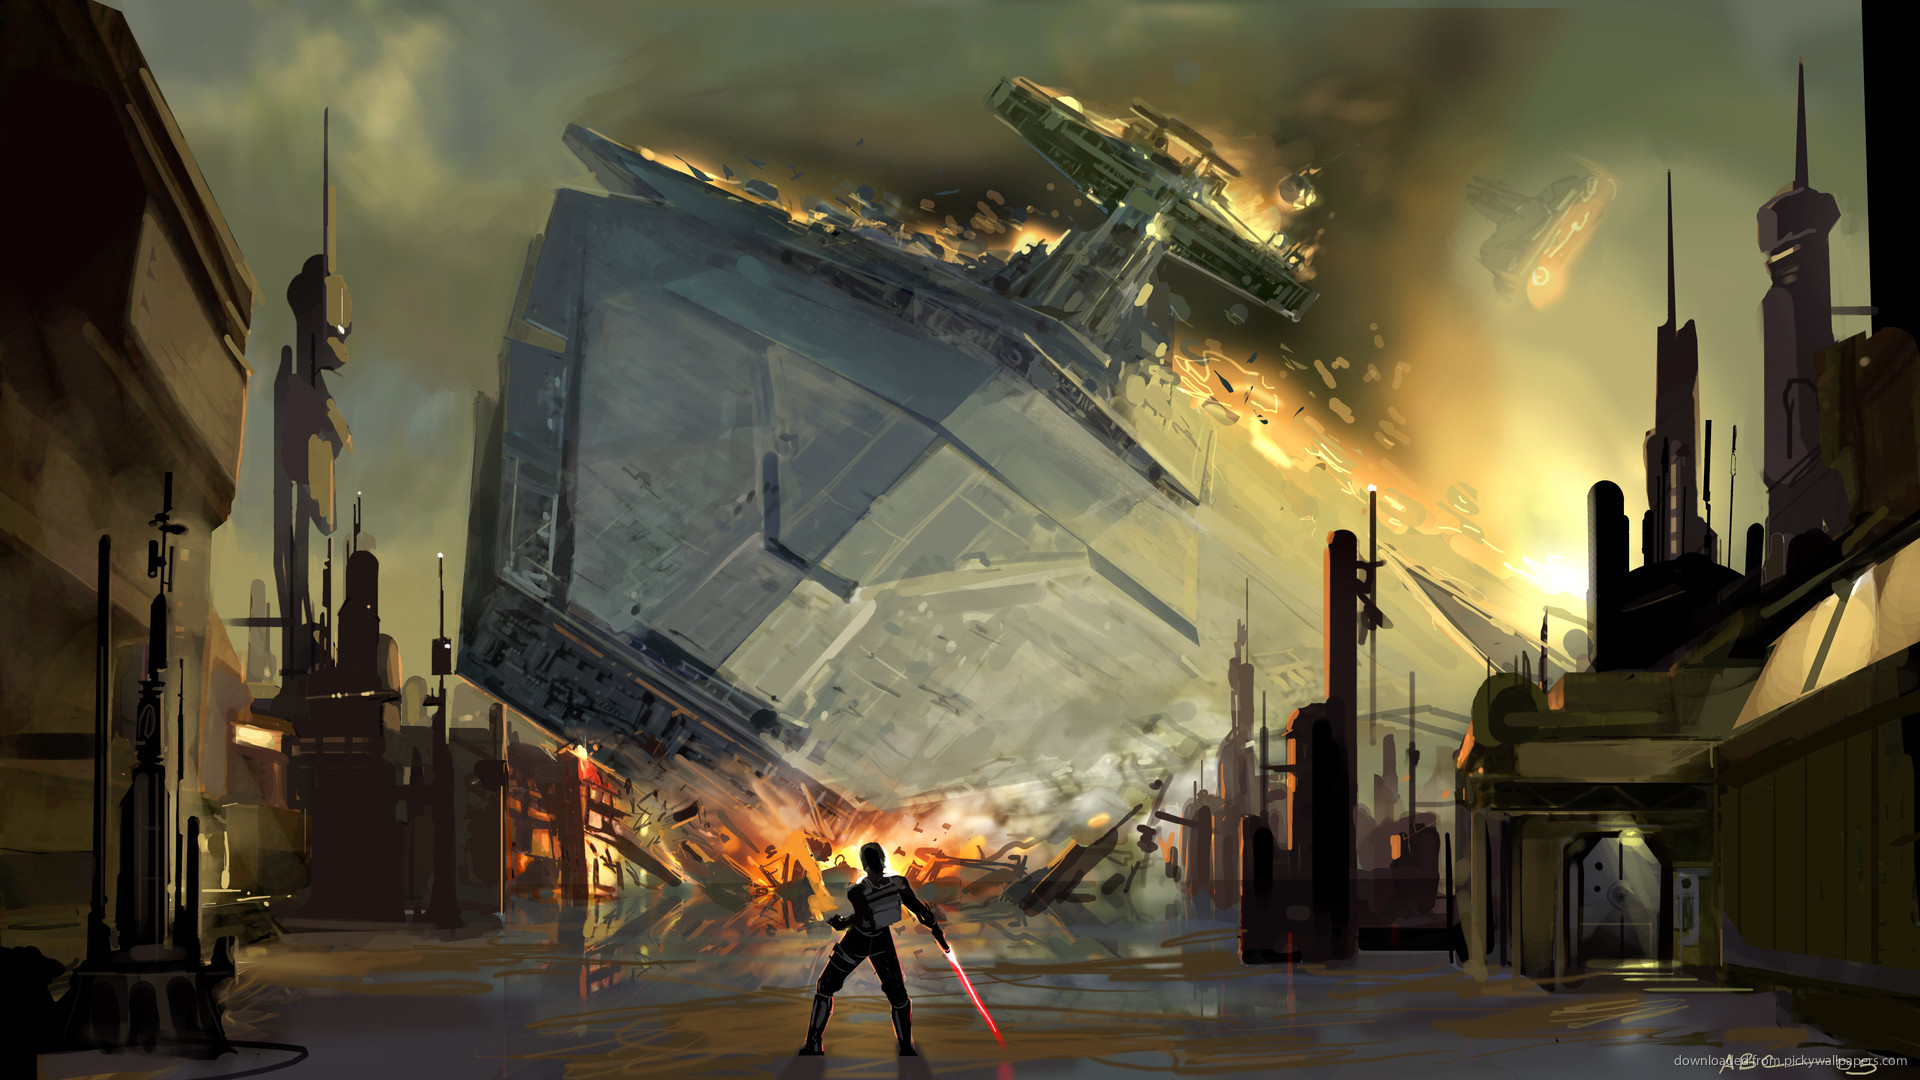 SWTFU Star Destroyer force pull picture